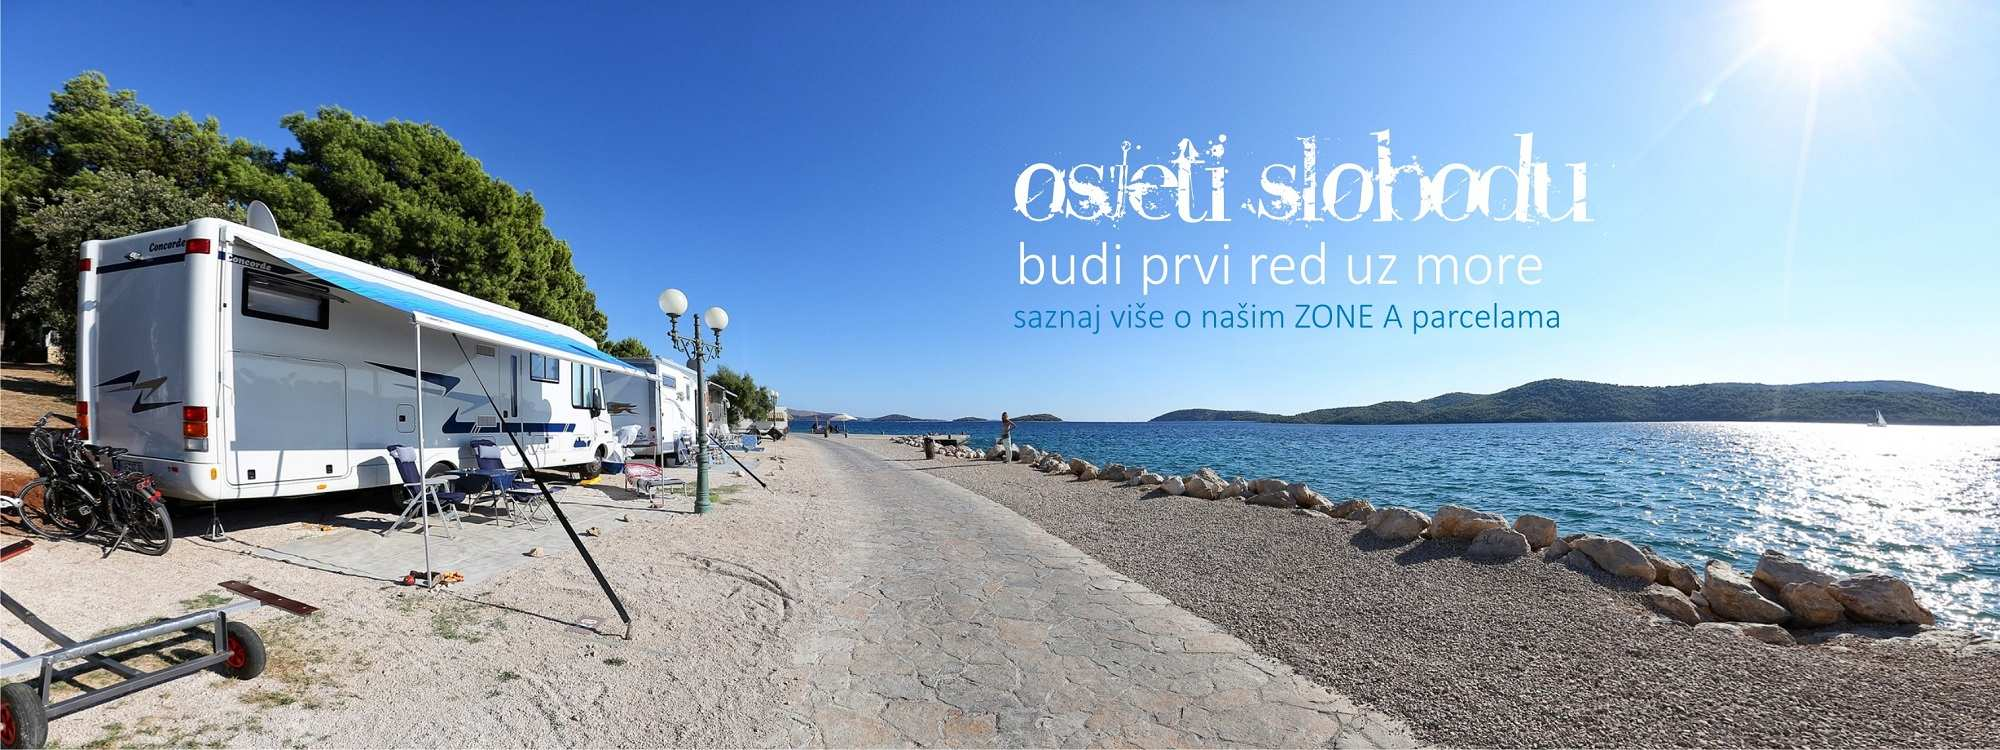 Solaris_camping_beach_resort_hrvatska_prvi_red_uz_more_parcela_zona_a